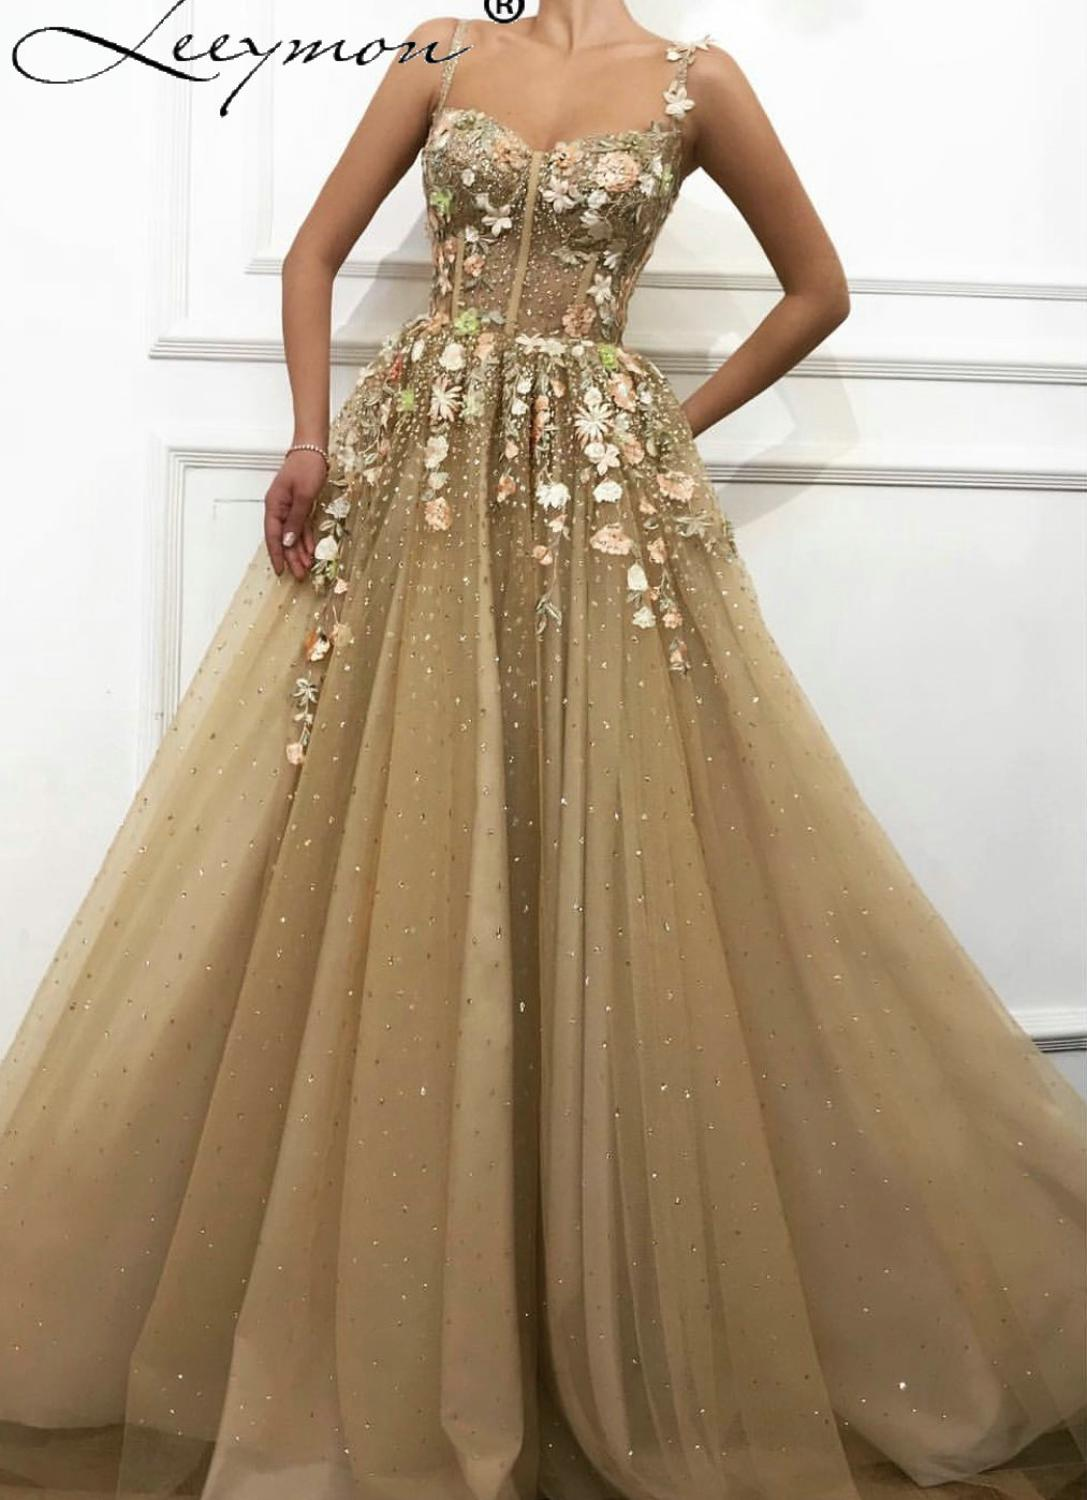 Thin Straps Sleeveless Crystal Flowers Evening Dresses 2019 Sexy A-Line Tulle Gowns Long Dress